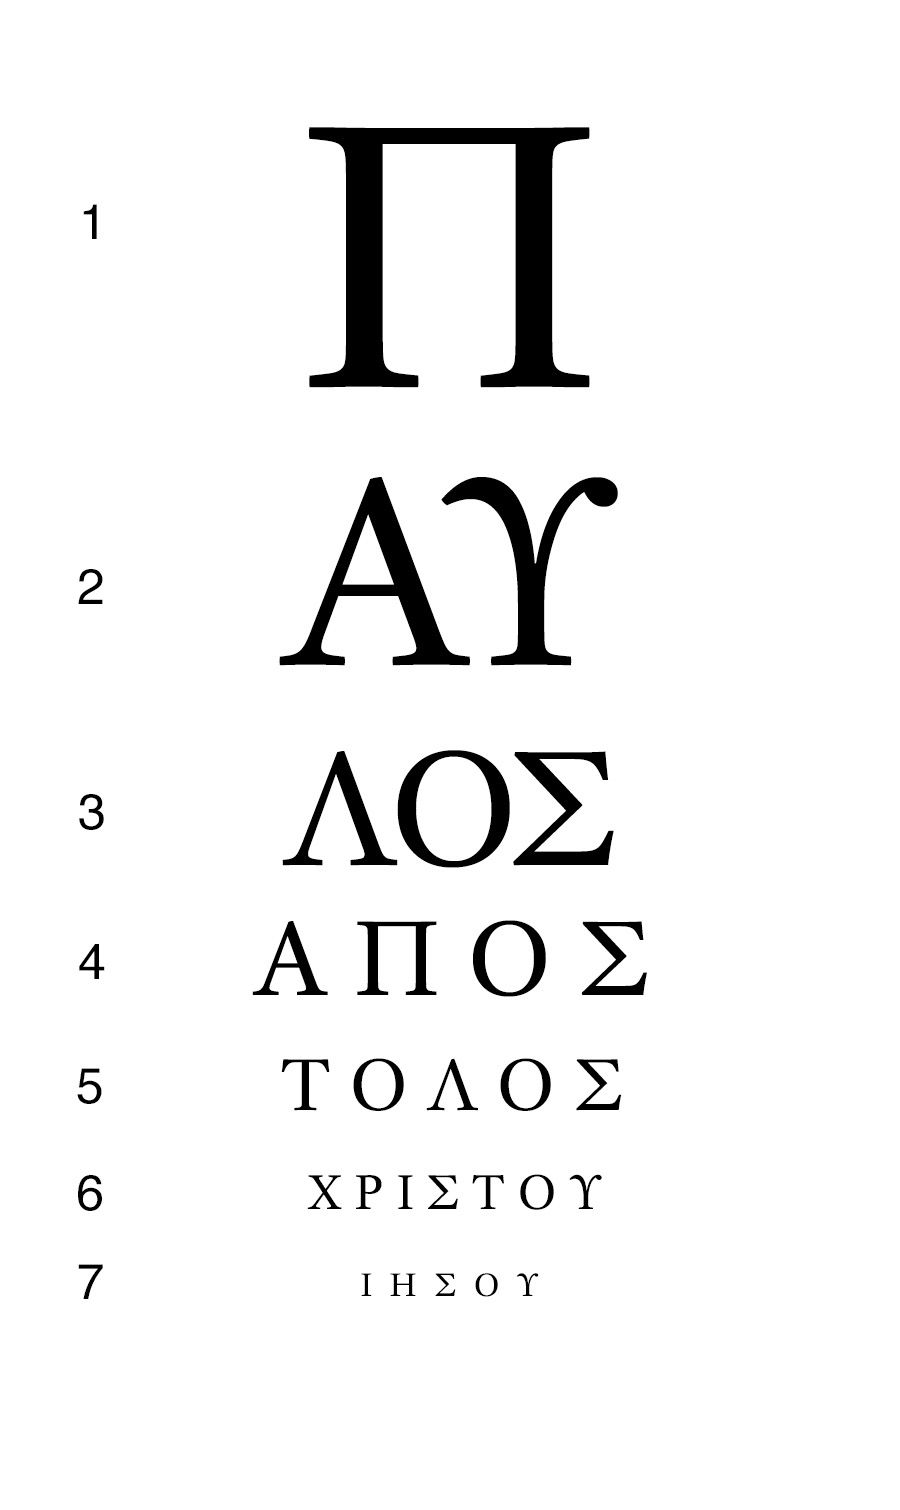 Eye letter chart gallery chart design ideas if you can read all seven lines of this eye chart you can read the if nvjuhfo Choice Image